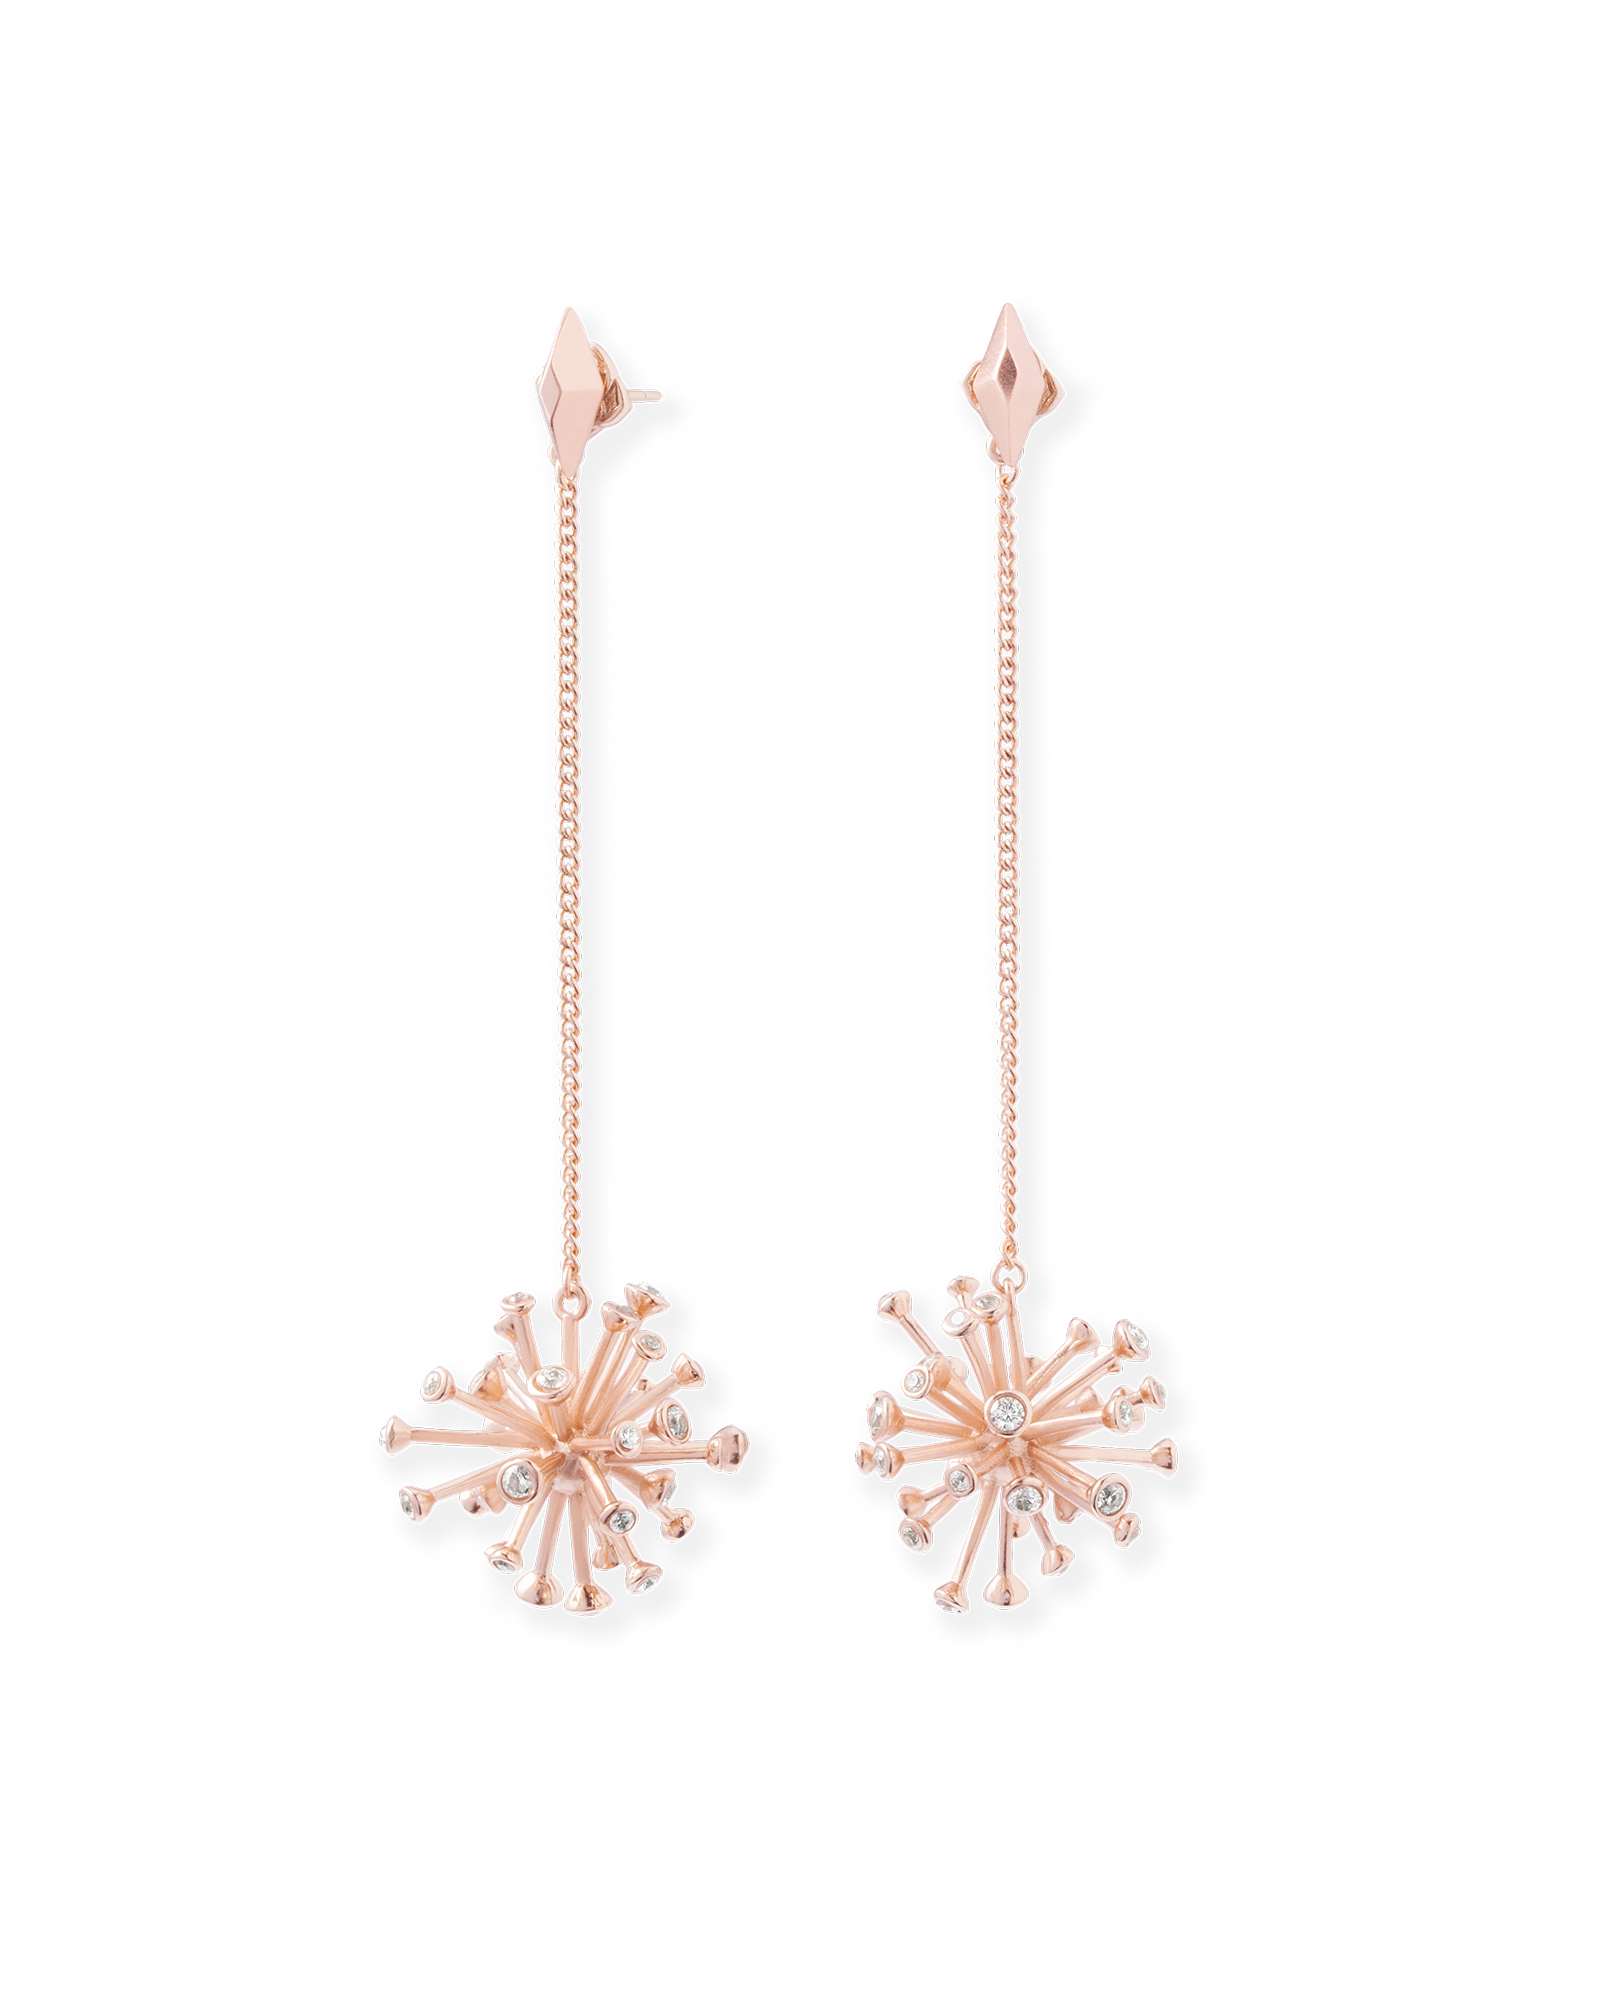 These rose gold shoulder duster ear jackets from kendra scott are